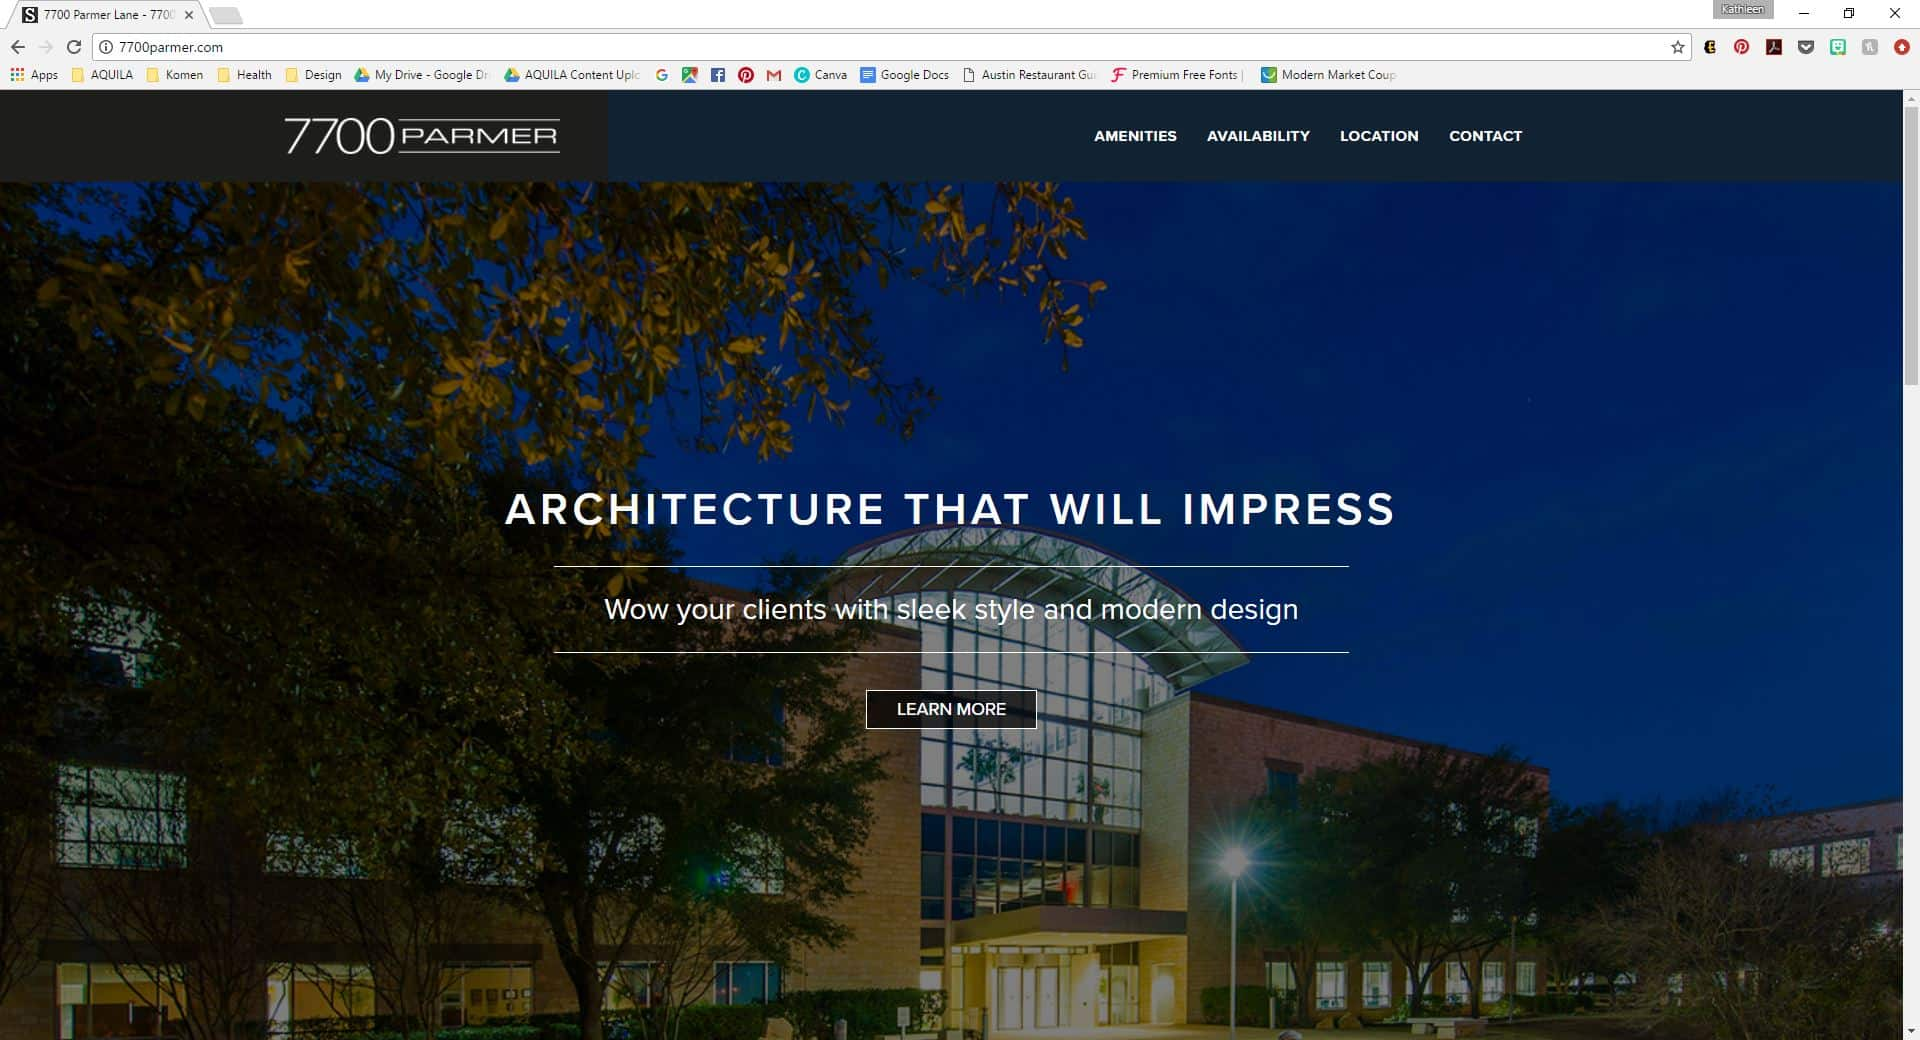 The 7700 Parmer website